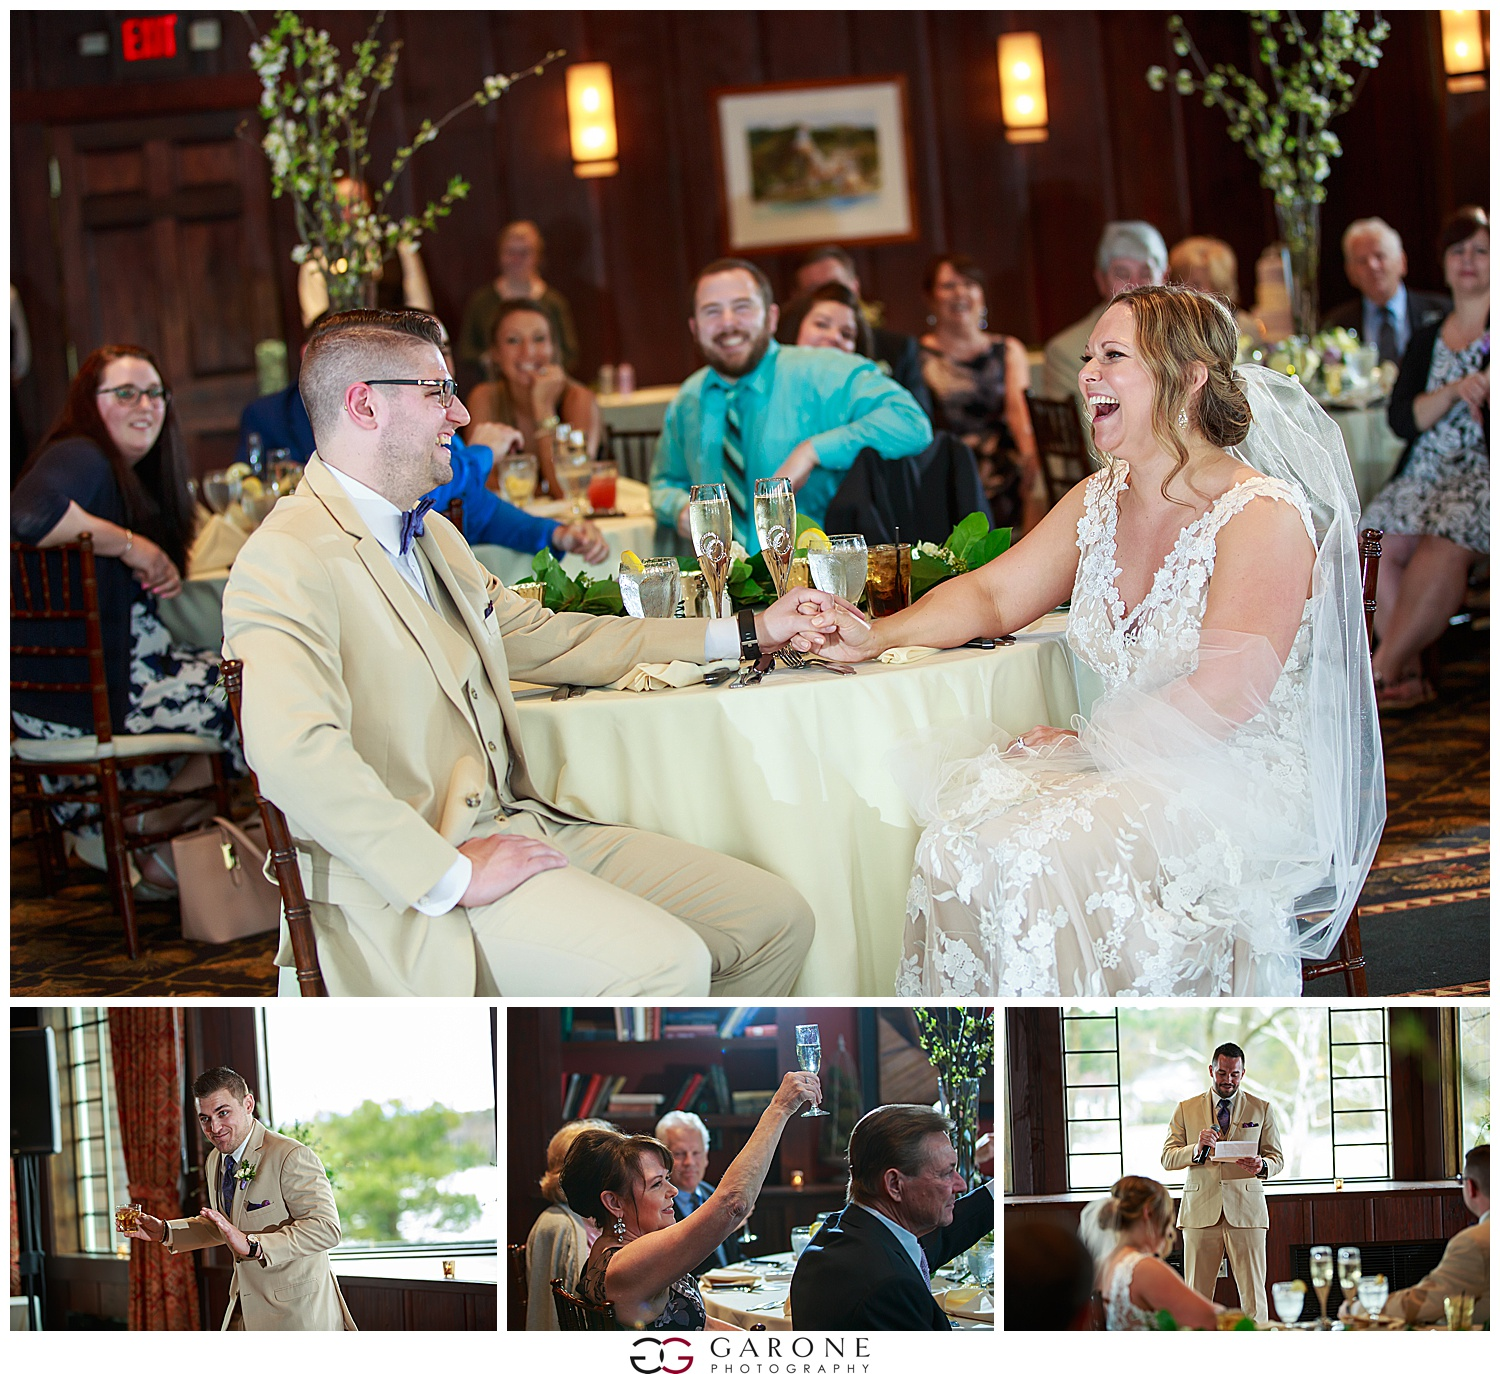 Megan_Lennox_Chirch_Landing_Wedding_Carriage_House_Photo_GaronePhotograpy_0044.jpg